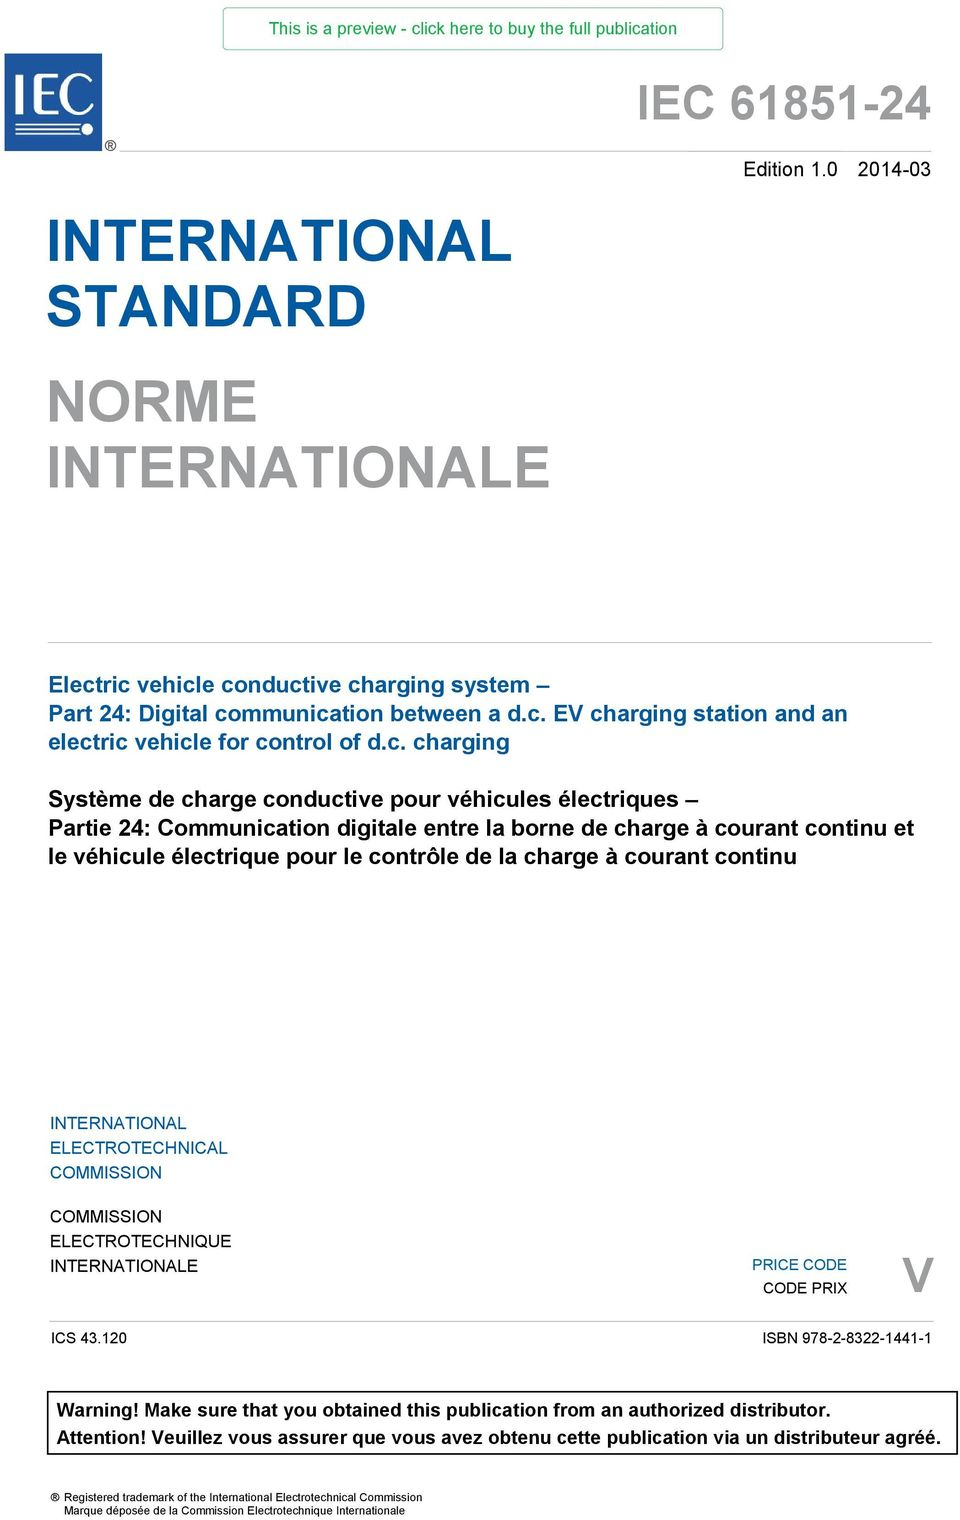 charge à courant continu INTERNATIONAL ELECTROTECHNICAL COMMISSION COMMISSION ELECTROTECHNIQUE INTERNATIONALE PRICE CODE CODE PRIX V ICS 43.120 ISBN 978-2-8322-1441-1 Warning!